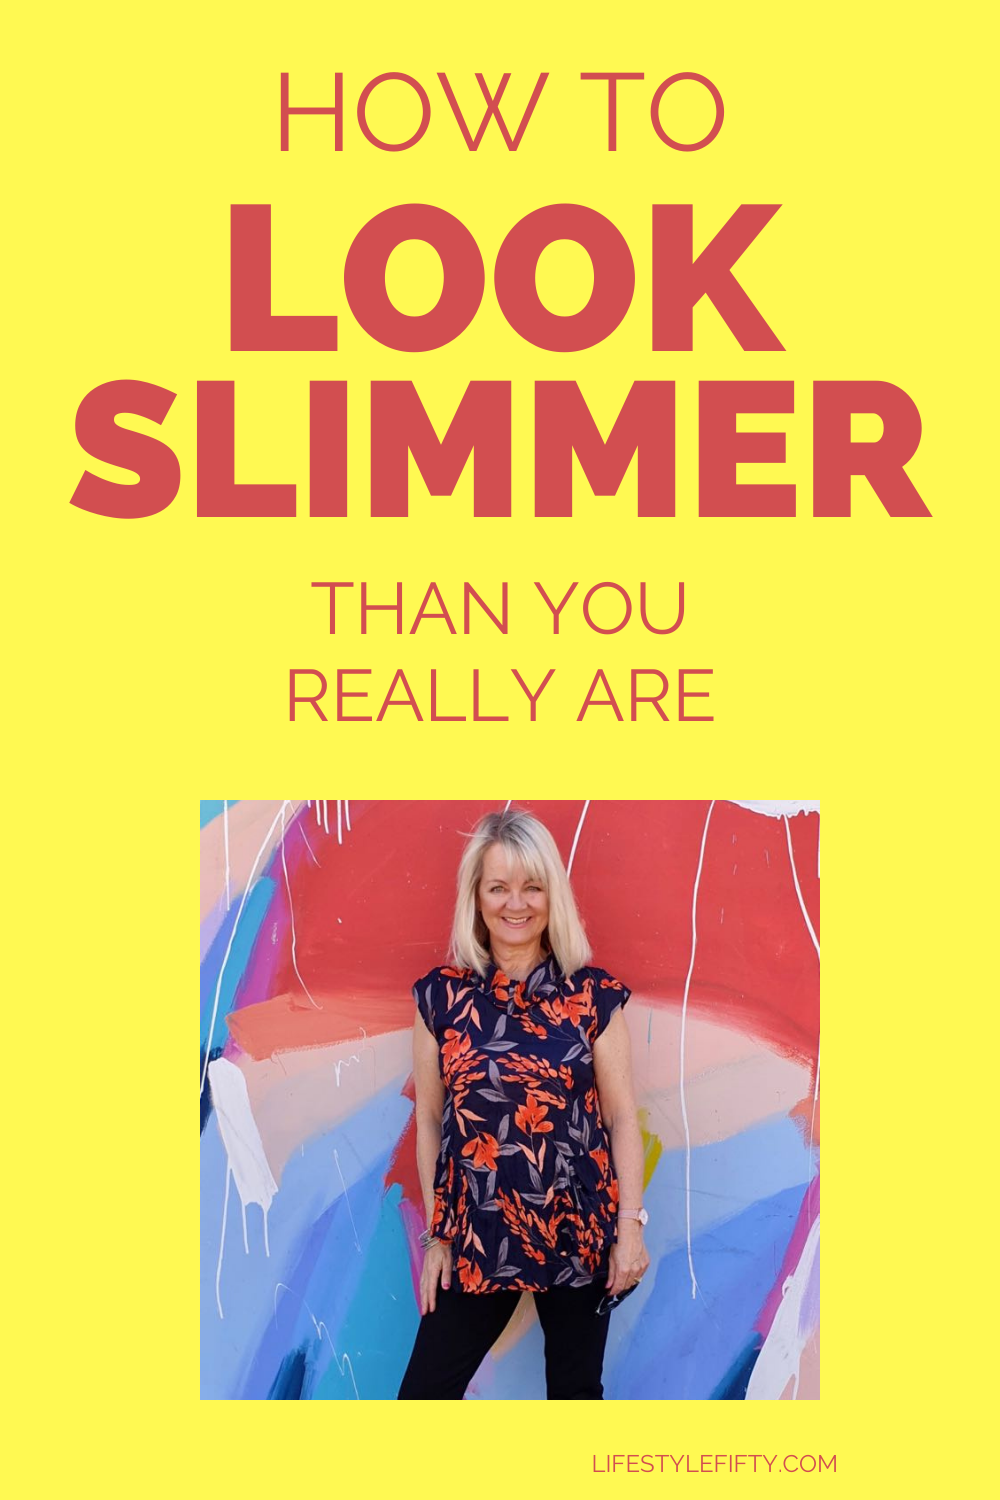 How to dress to look slimmer in clothes without dieting. Image of a woman. Text overlay yellow background.